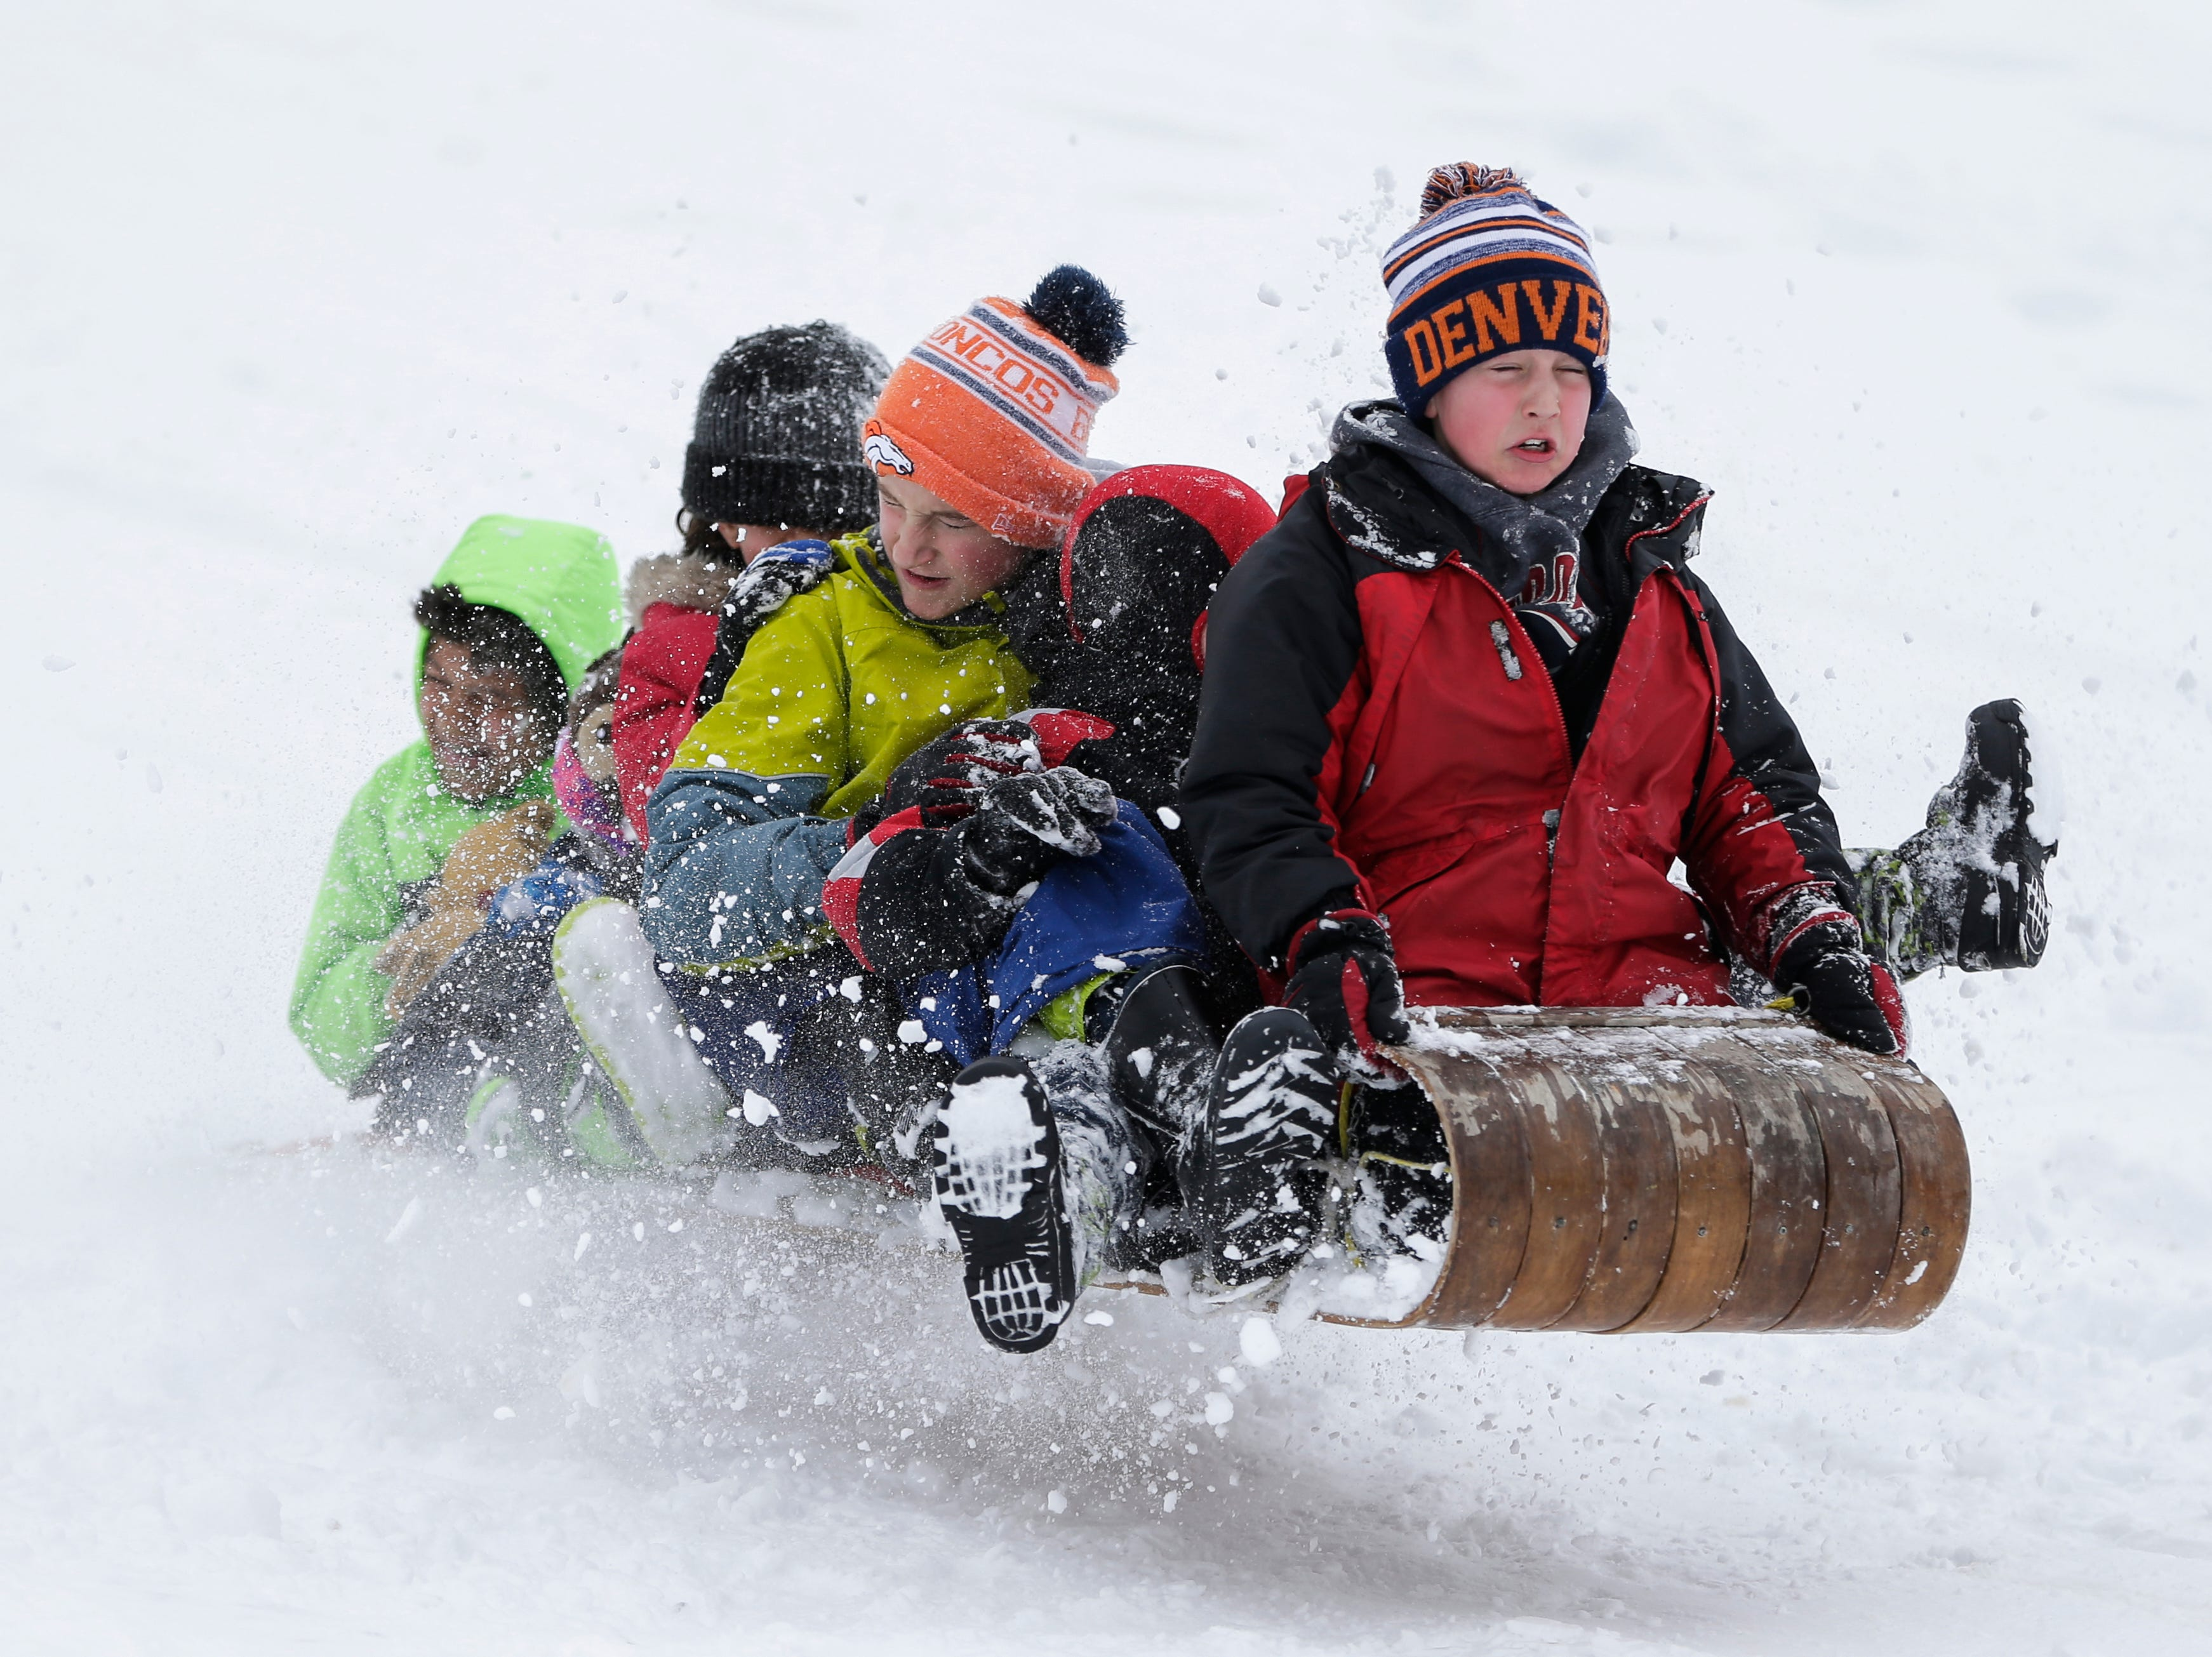 Chase Crees, 9, of Manitowoc, steers a toboggan full of his friends over a jump on the hill at Silver Creek Park Monday, Apr. 16, 2018, in Manitowoc, Wis. Children were given the day off of school after winter storm Evelyn brought a mess of snow to the area. Josh Clark/USA TODAY NETWORK-Wisconsin